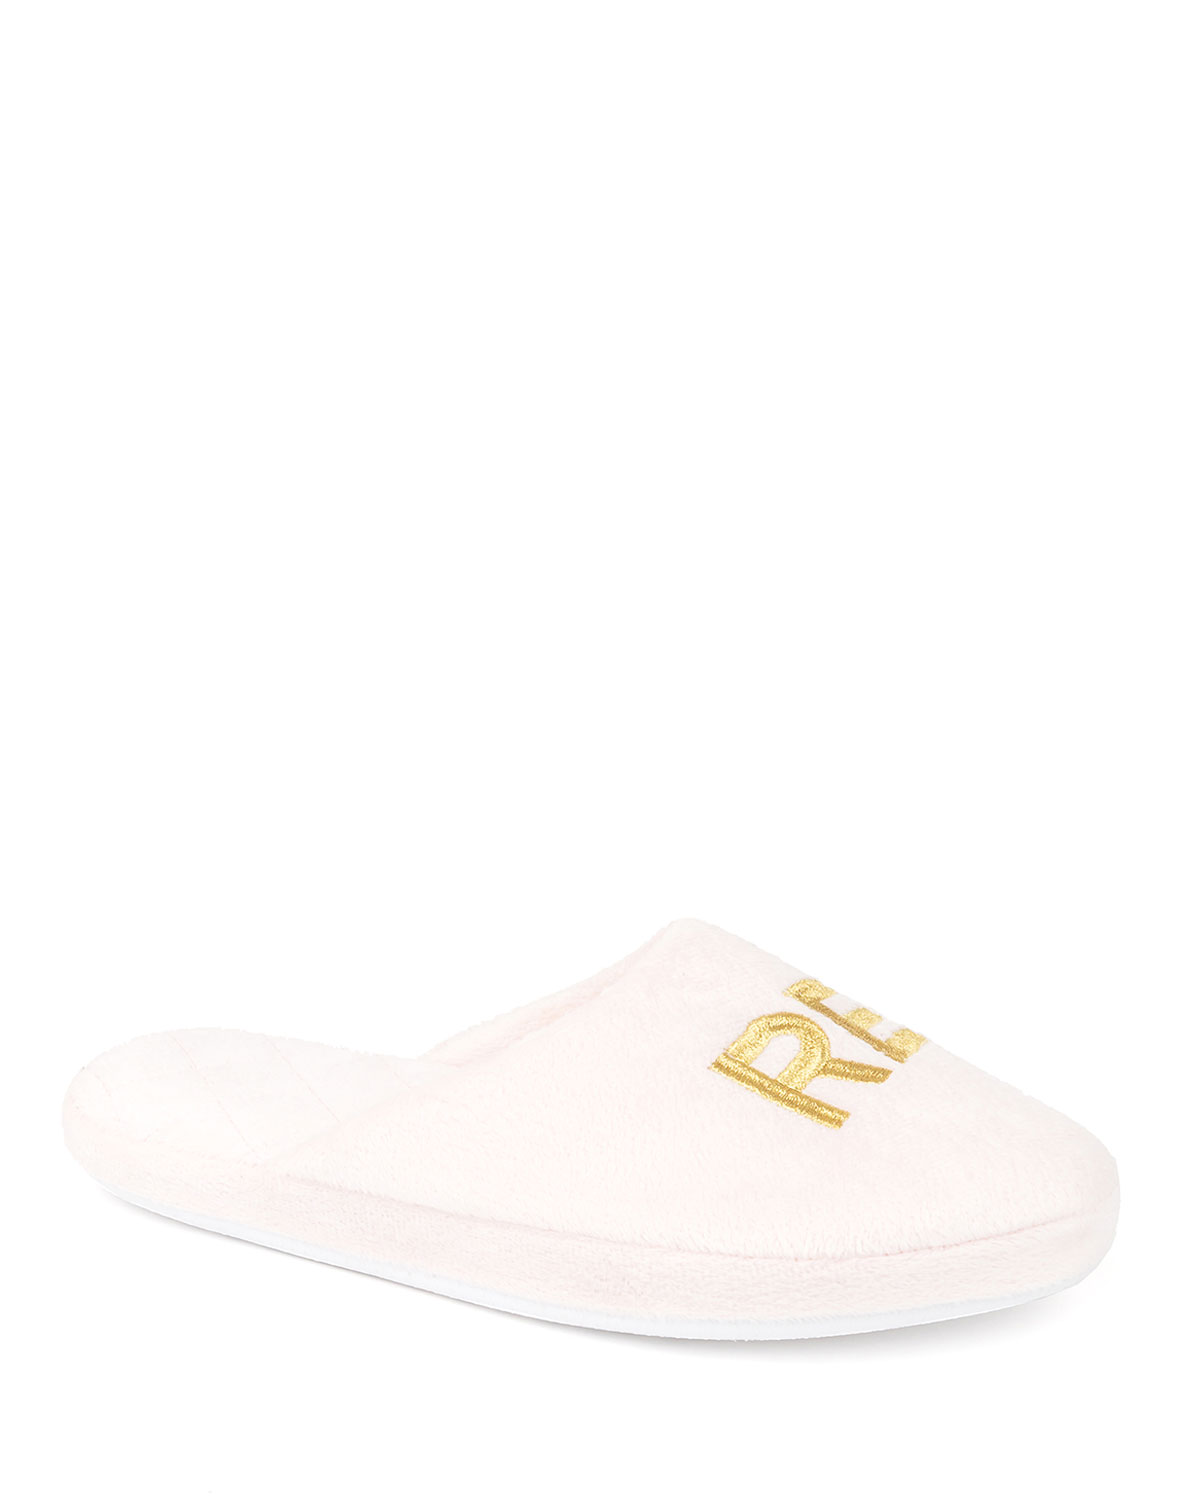 Relax Embroidered Slippers